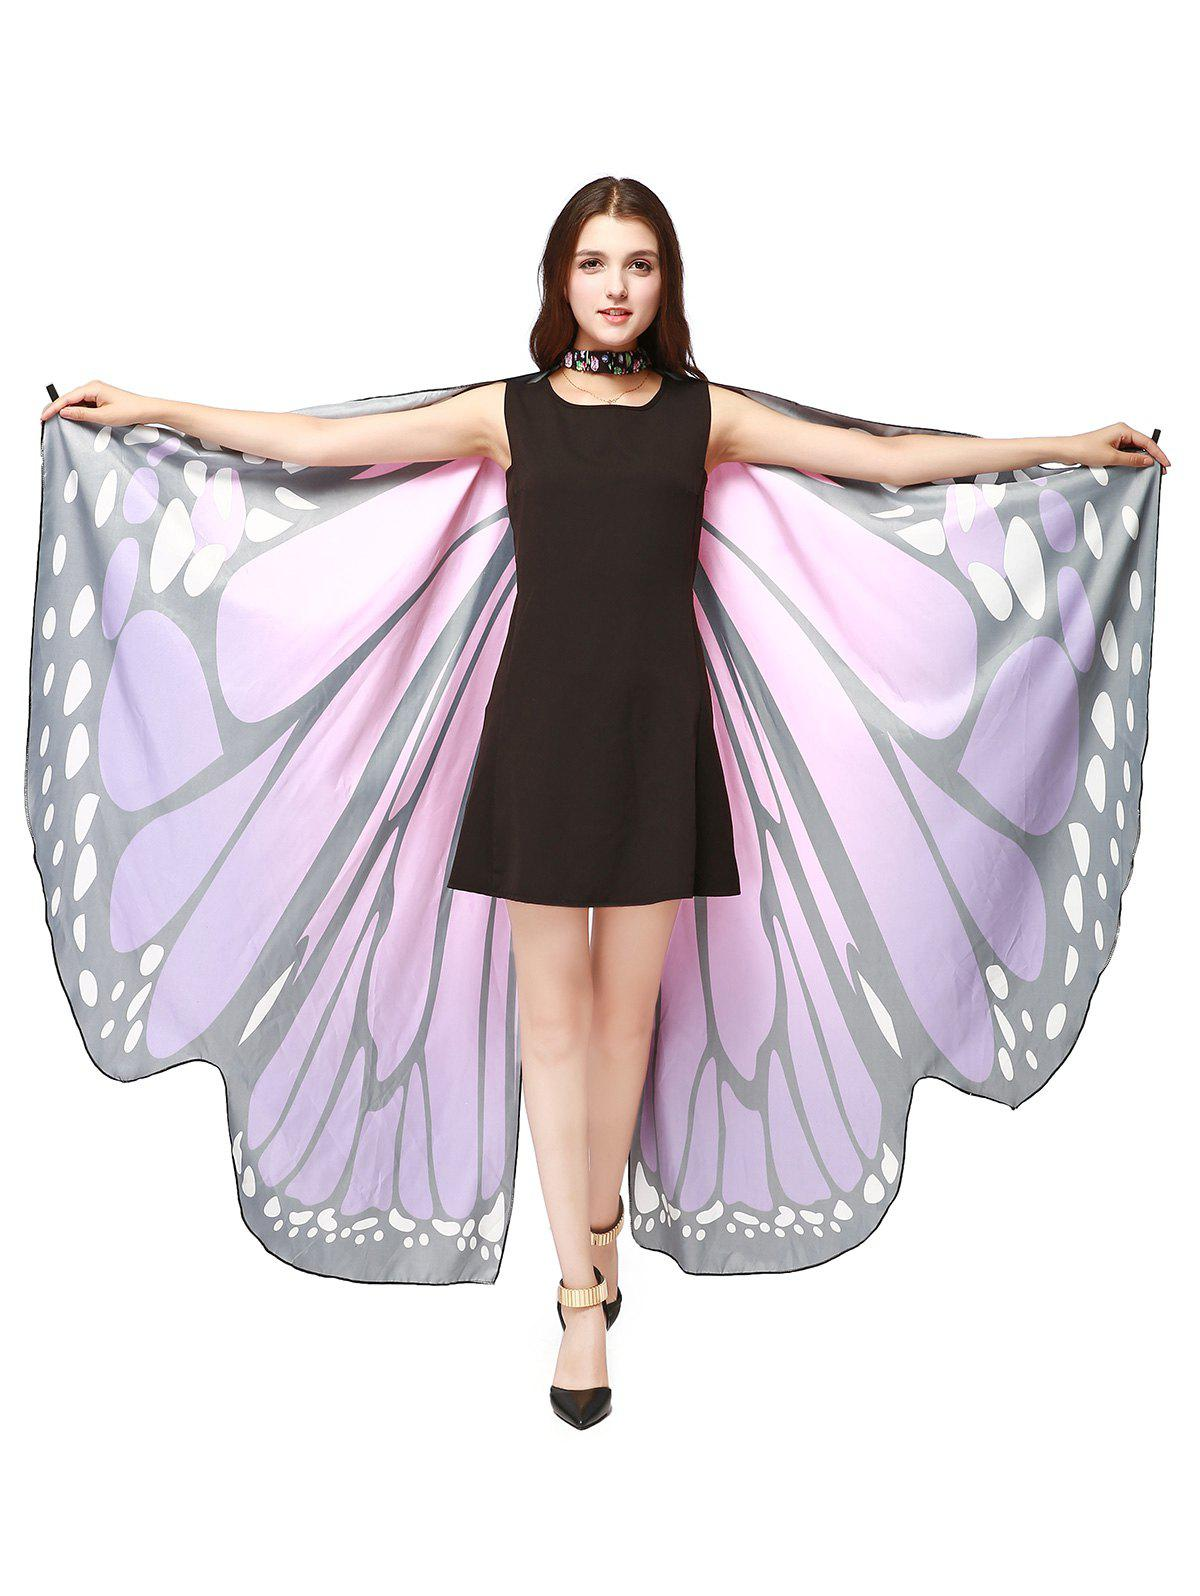 Oversize Chiffon Butterfly Wing Design Strap CapeACCESSORIES<br><br>Color: PURPLE; Scarf Type: Shawl/Wrap; Group: Adult; Gender: For Women; Style: Fashion; Pattern Type: Animal; Season: Fall,Spring,Summer,Winter; Scarf Length: 168CM; Scarf Width (CM): 135CM; Weight: 0.2000kg; Package Contents: 1 x Cape Scarf;